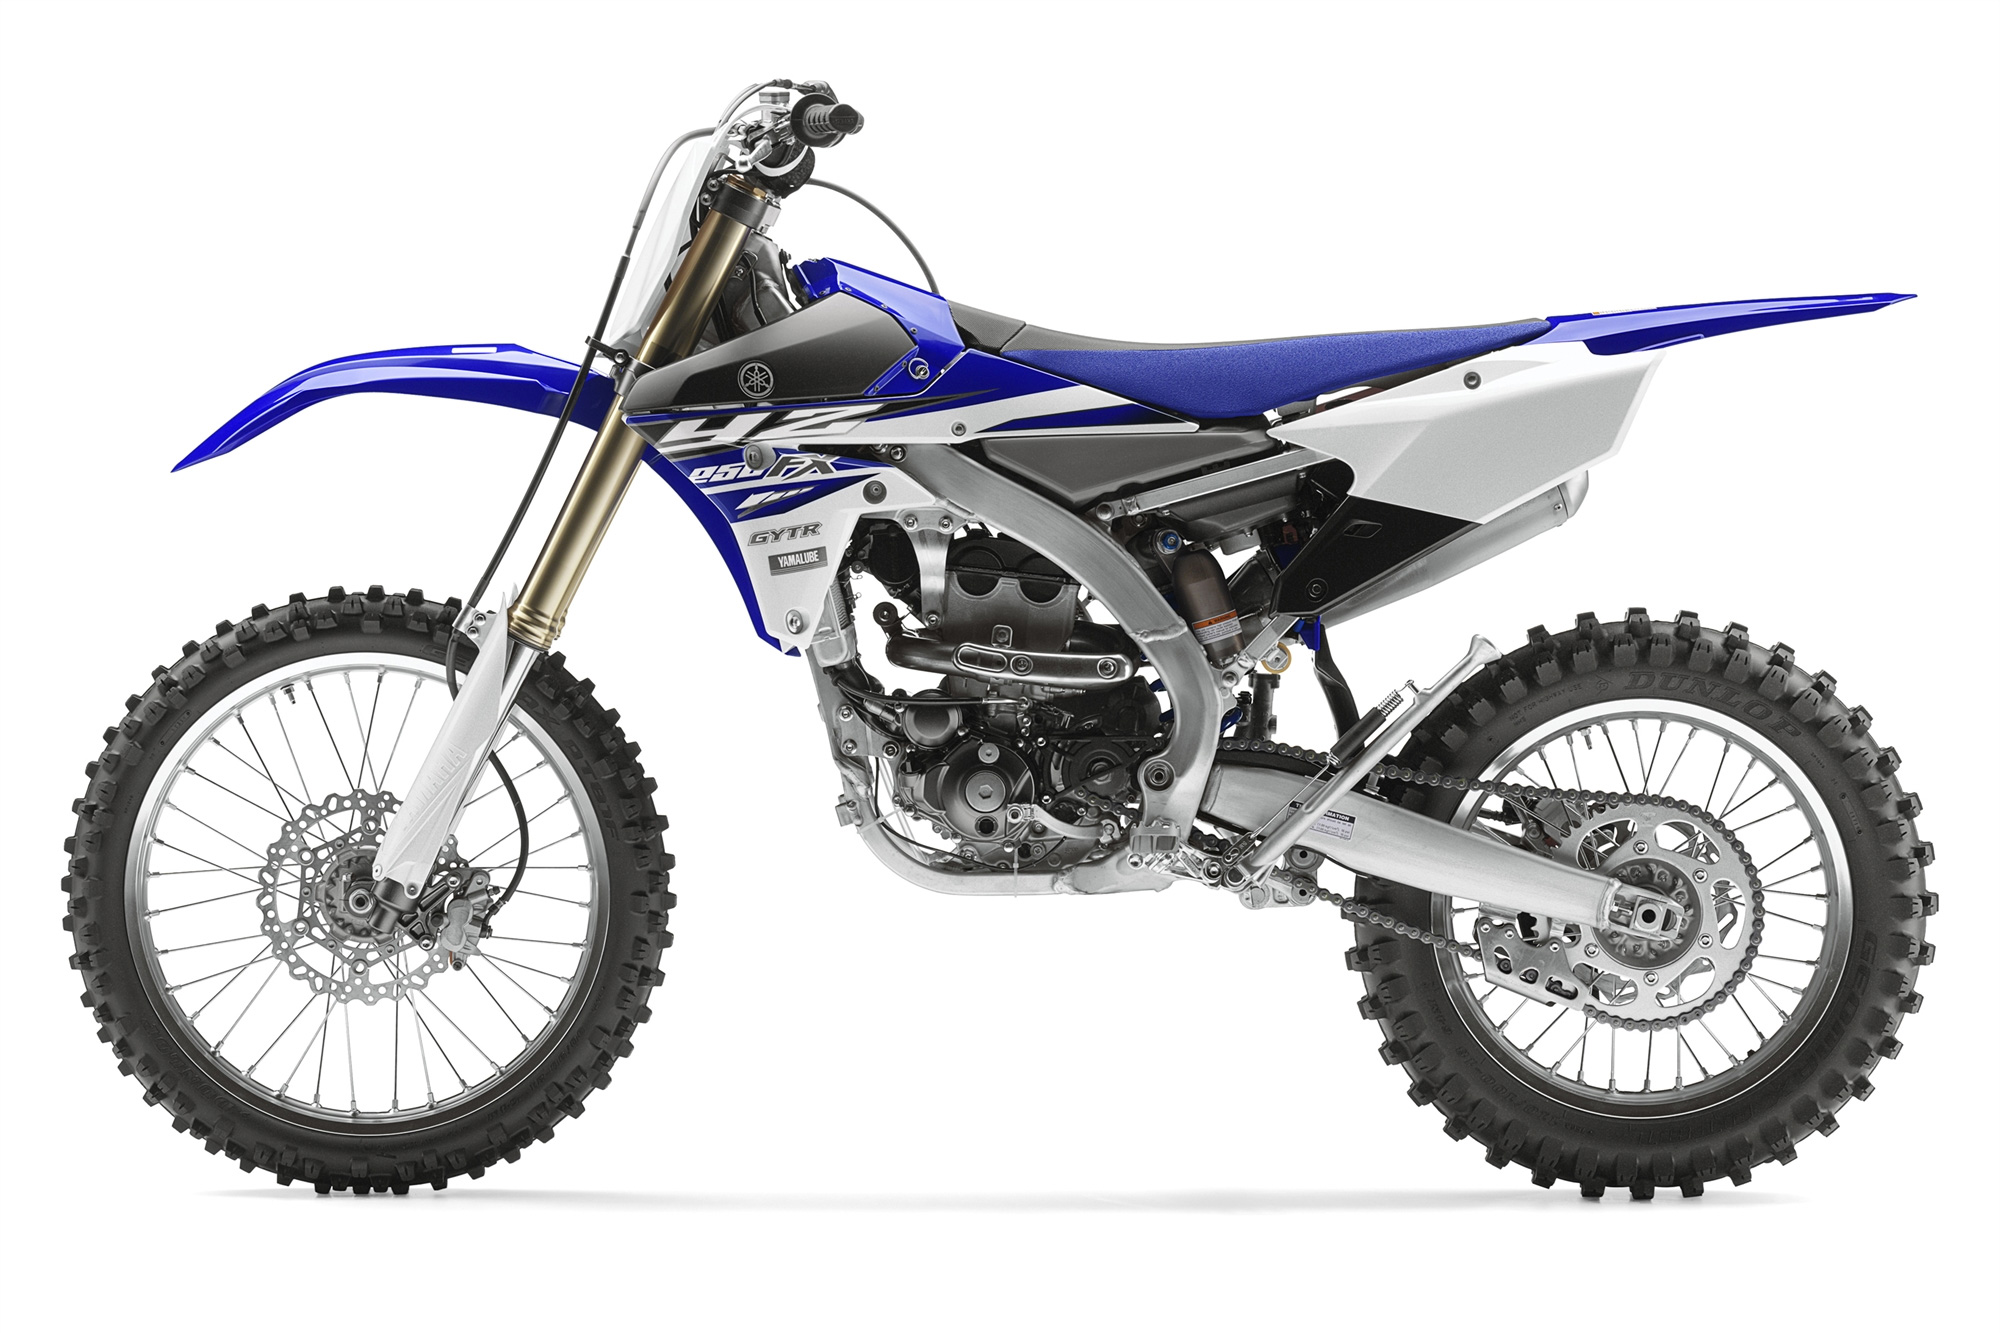 2015 Yamaha WR 250F & YZ 250FX Released | Dirt Action